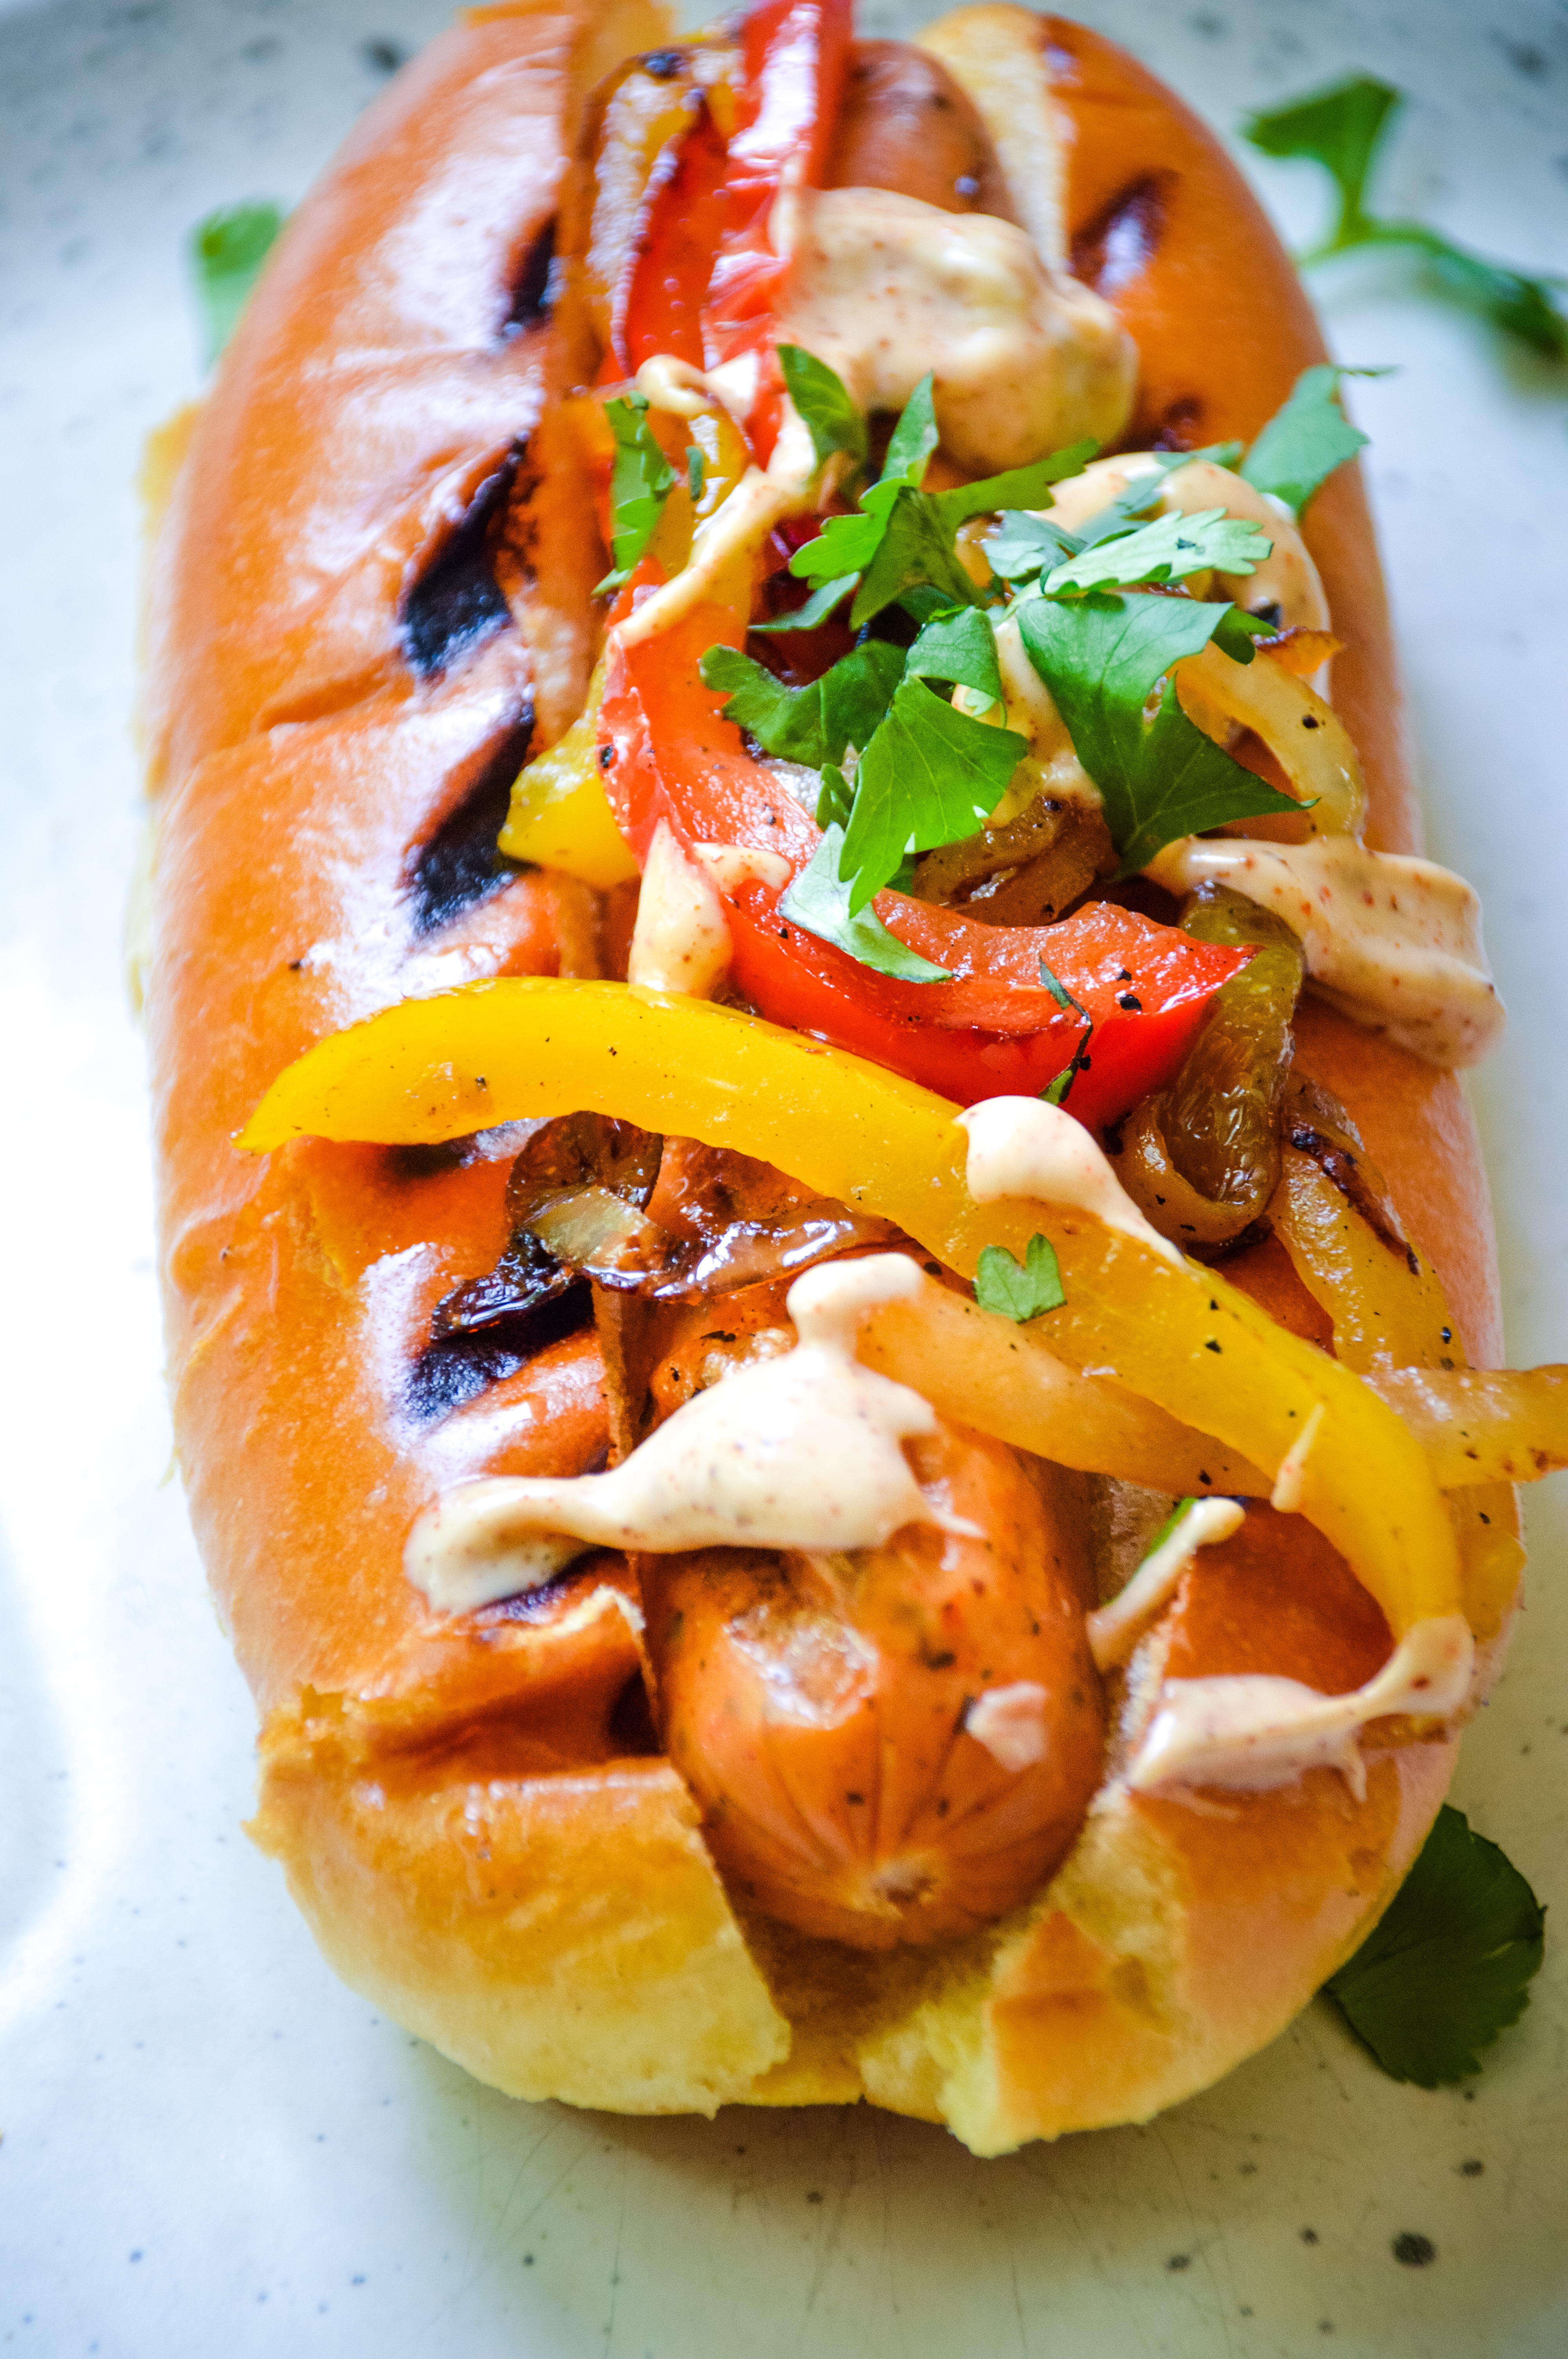 Sausage and Pepper Dogs with Chipotle Aioli